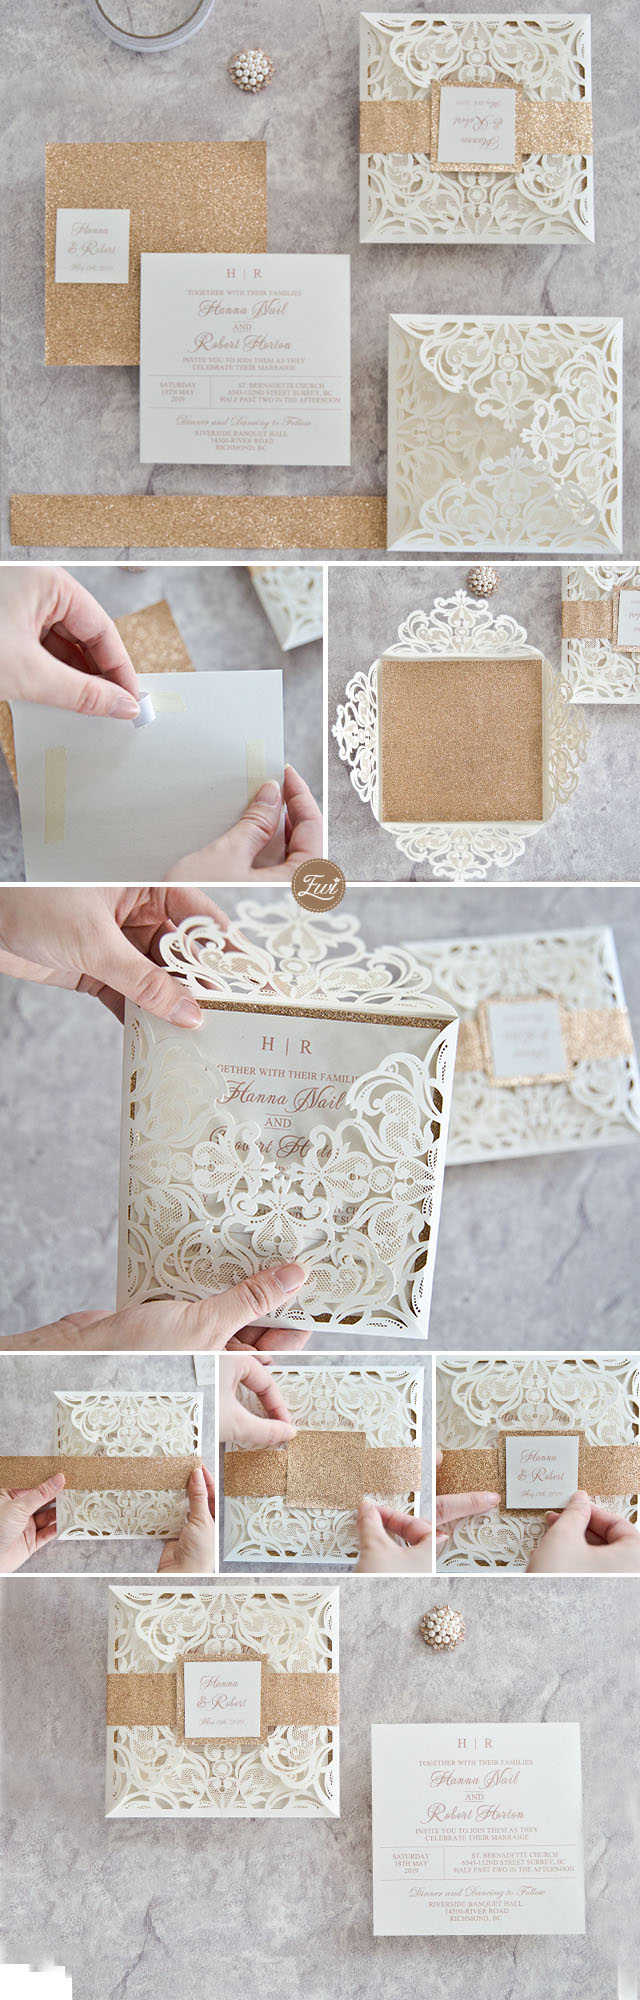 Luxury rose gold laser cut wedding invitation DIY ideas with glittery bottom card and belly band